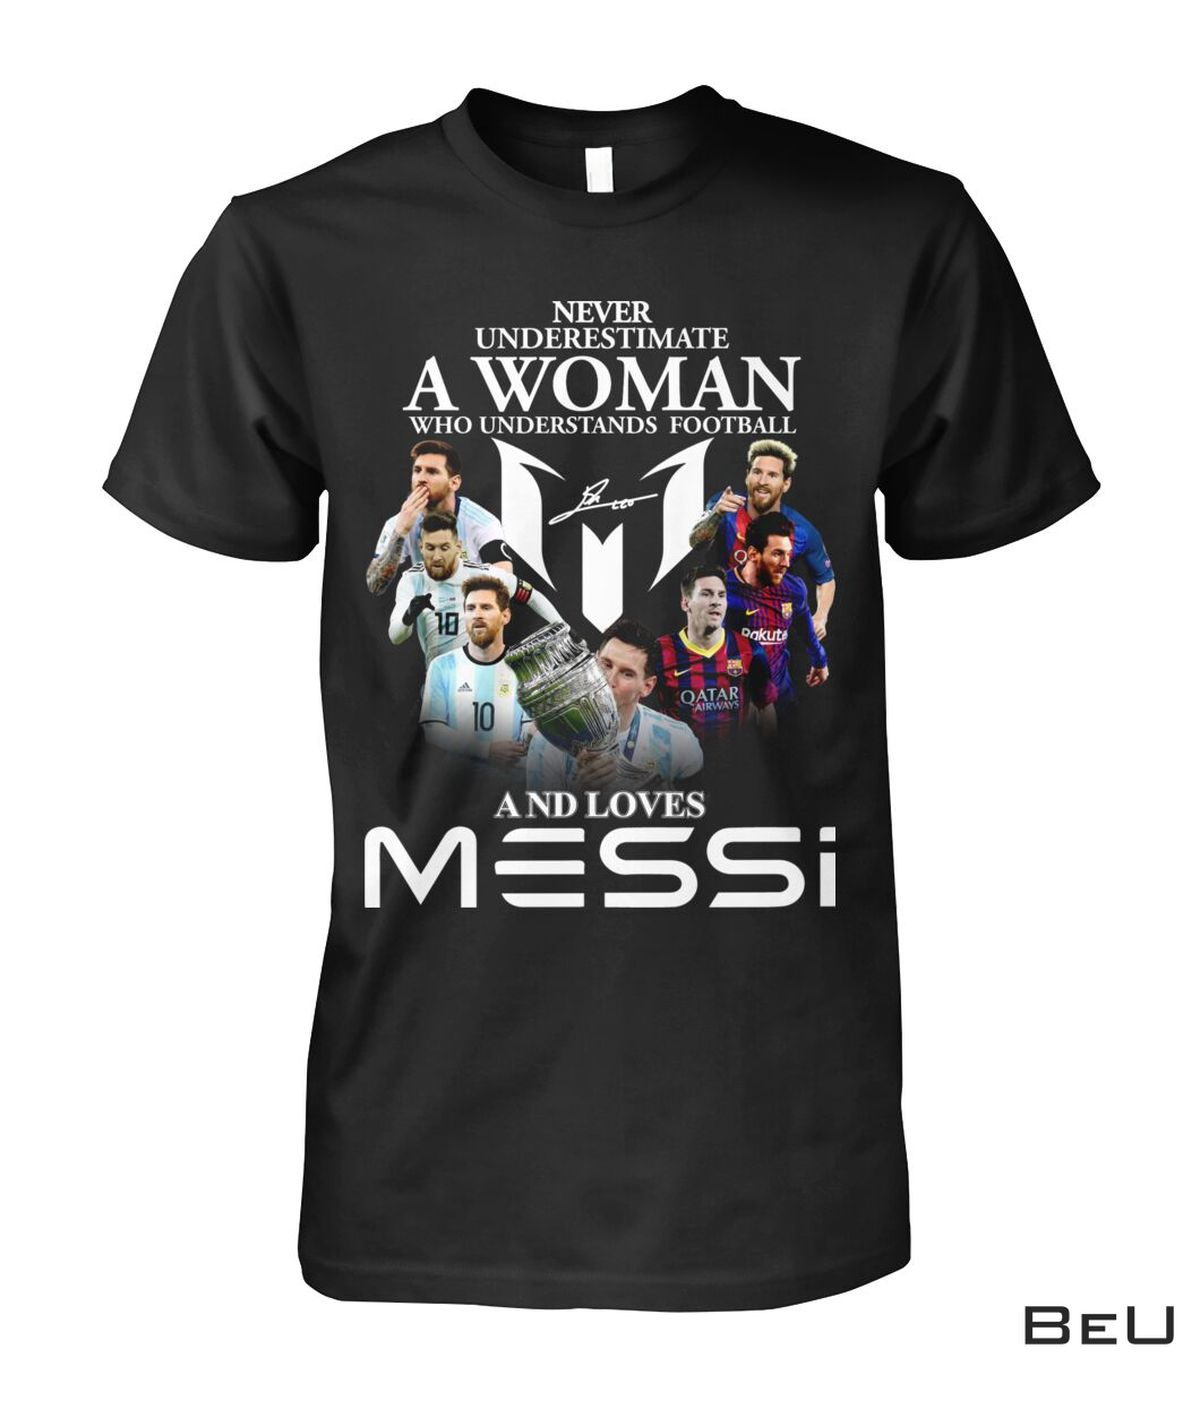 Never-Underestimate-A-Woman-Who-Understands-Football-And-Loves-Messi-Shirt